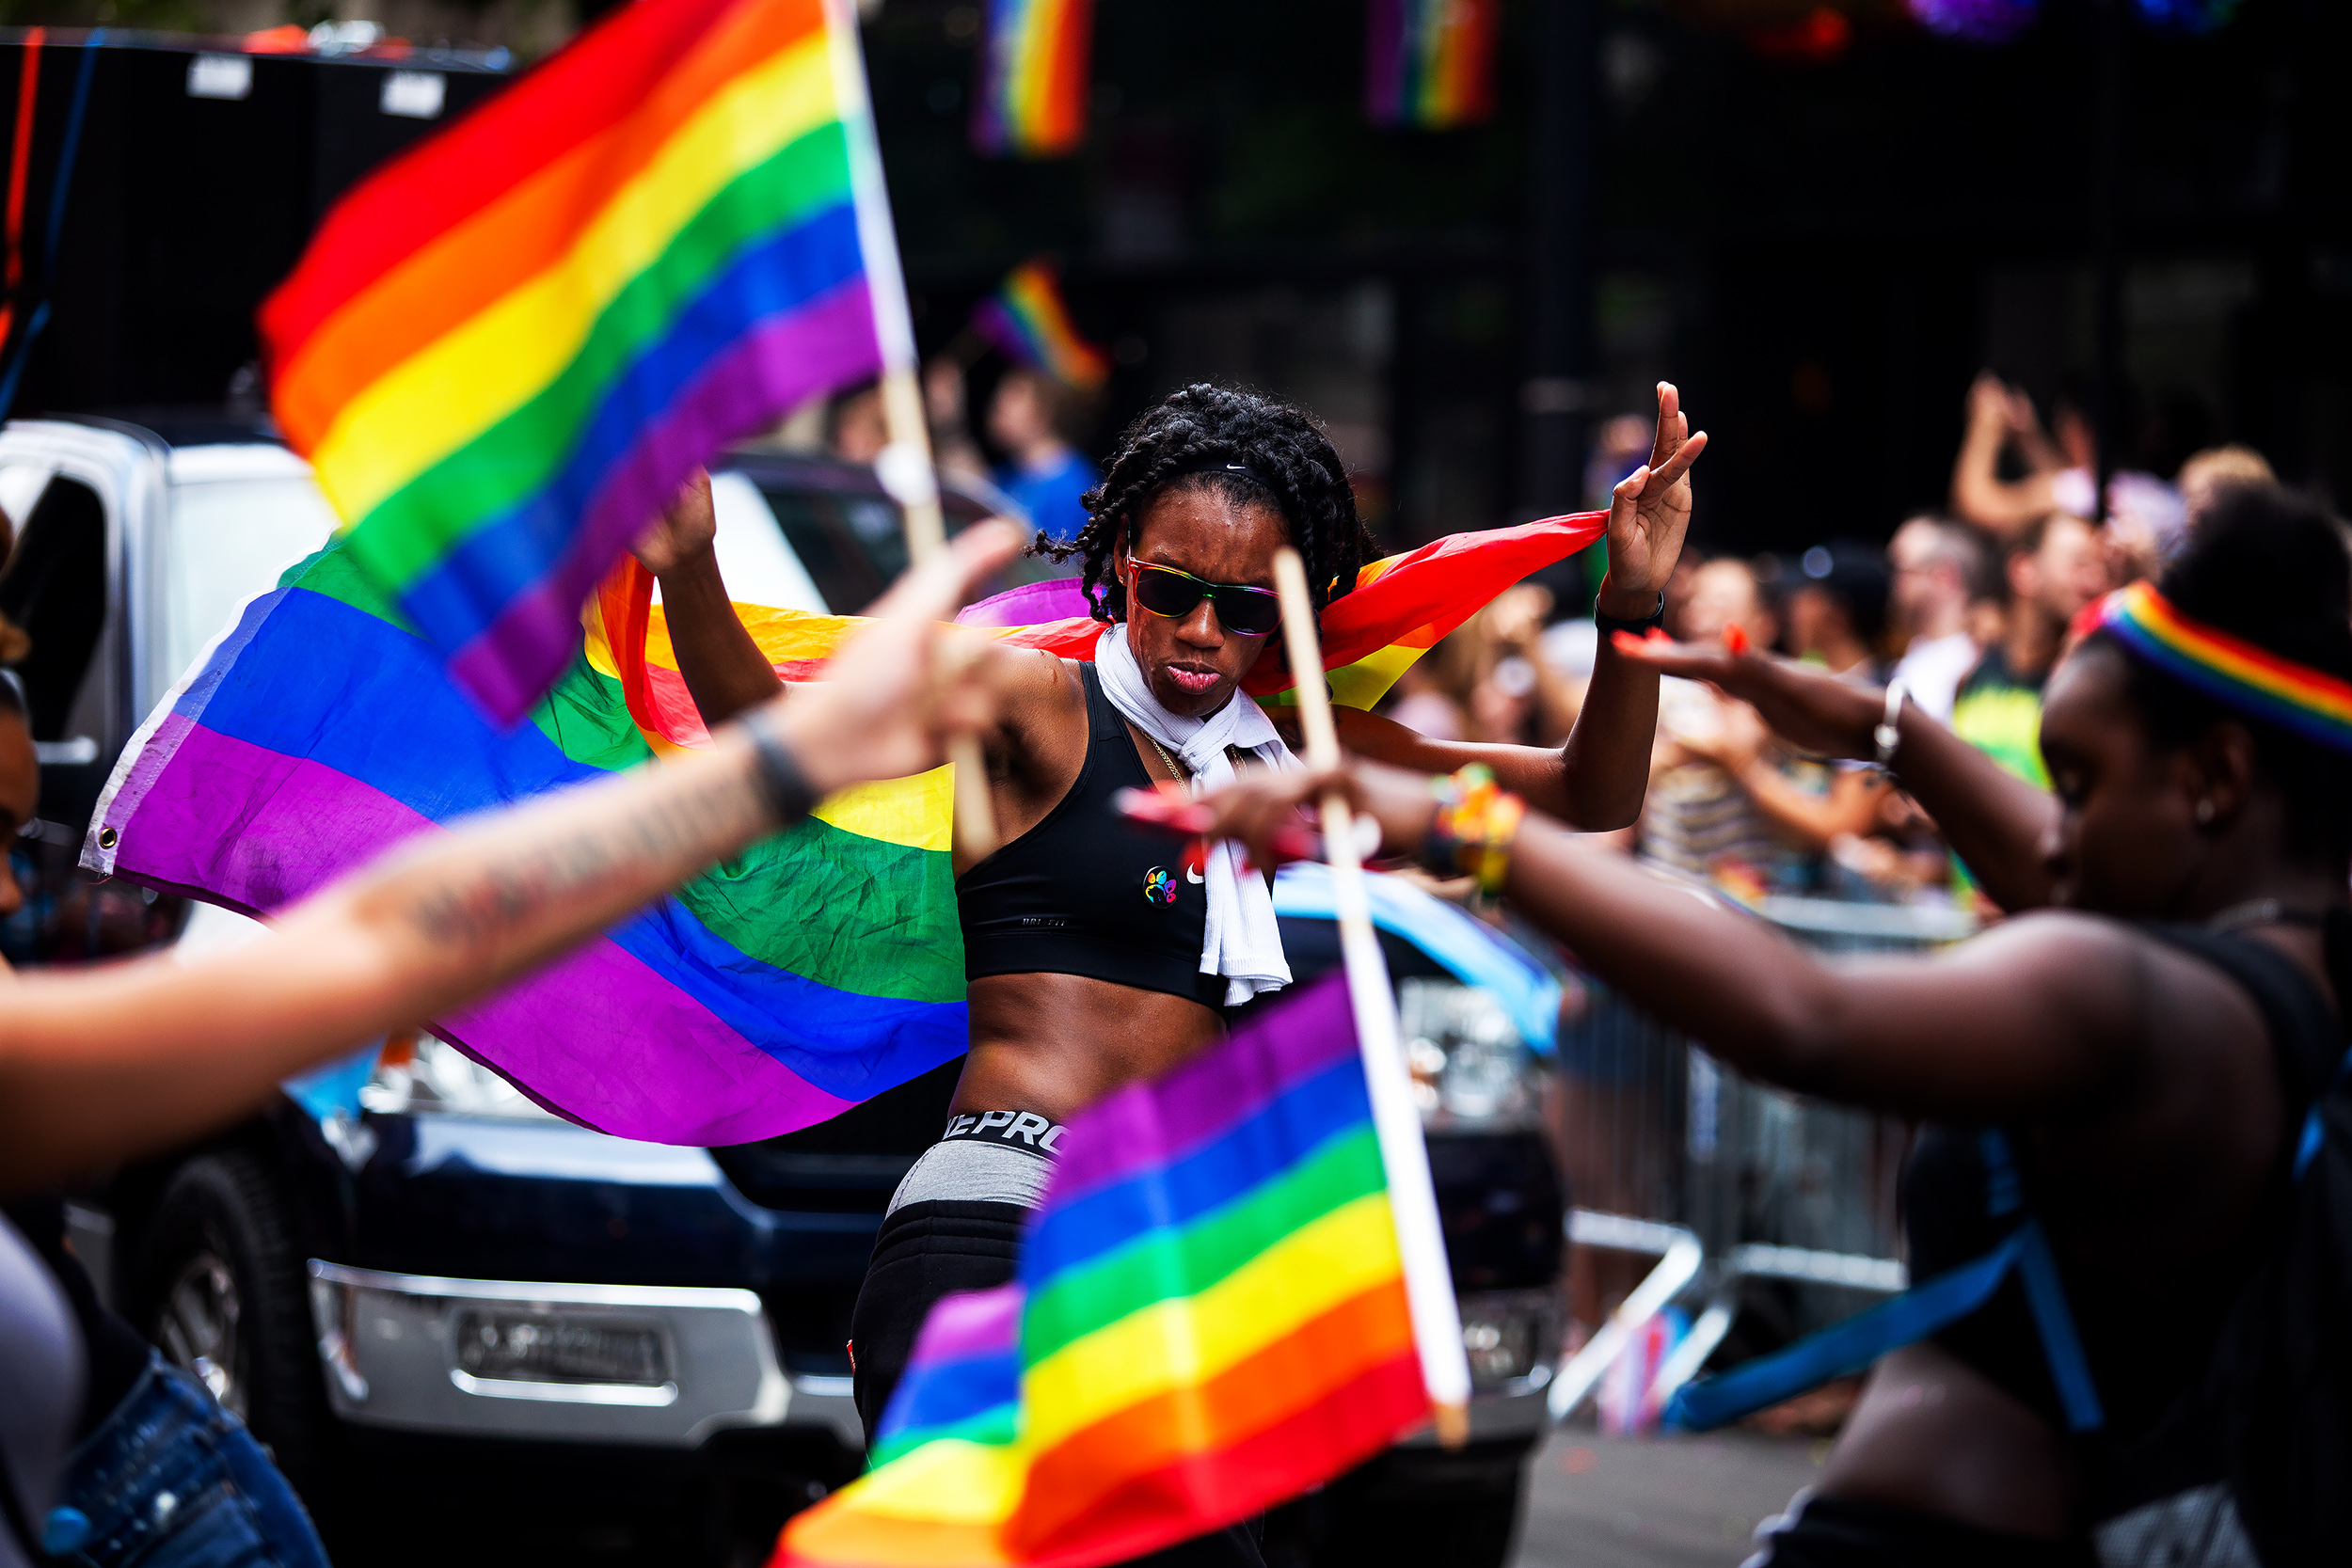 Thousands danced and marched in New York's 49th annual gay pride parade in Manhattan, New York June 24, 2018. The first Pride March in 1970 was a civil rights protest in defense of sexual freedom. Over the years, folks identifying as gay, lesbian, bisexual, transgender, queer, intersexual, asexual, and their allies, have rallied to sustain the thriving community.